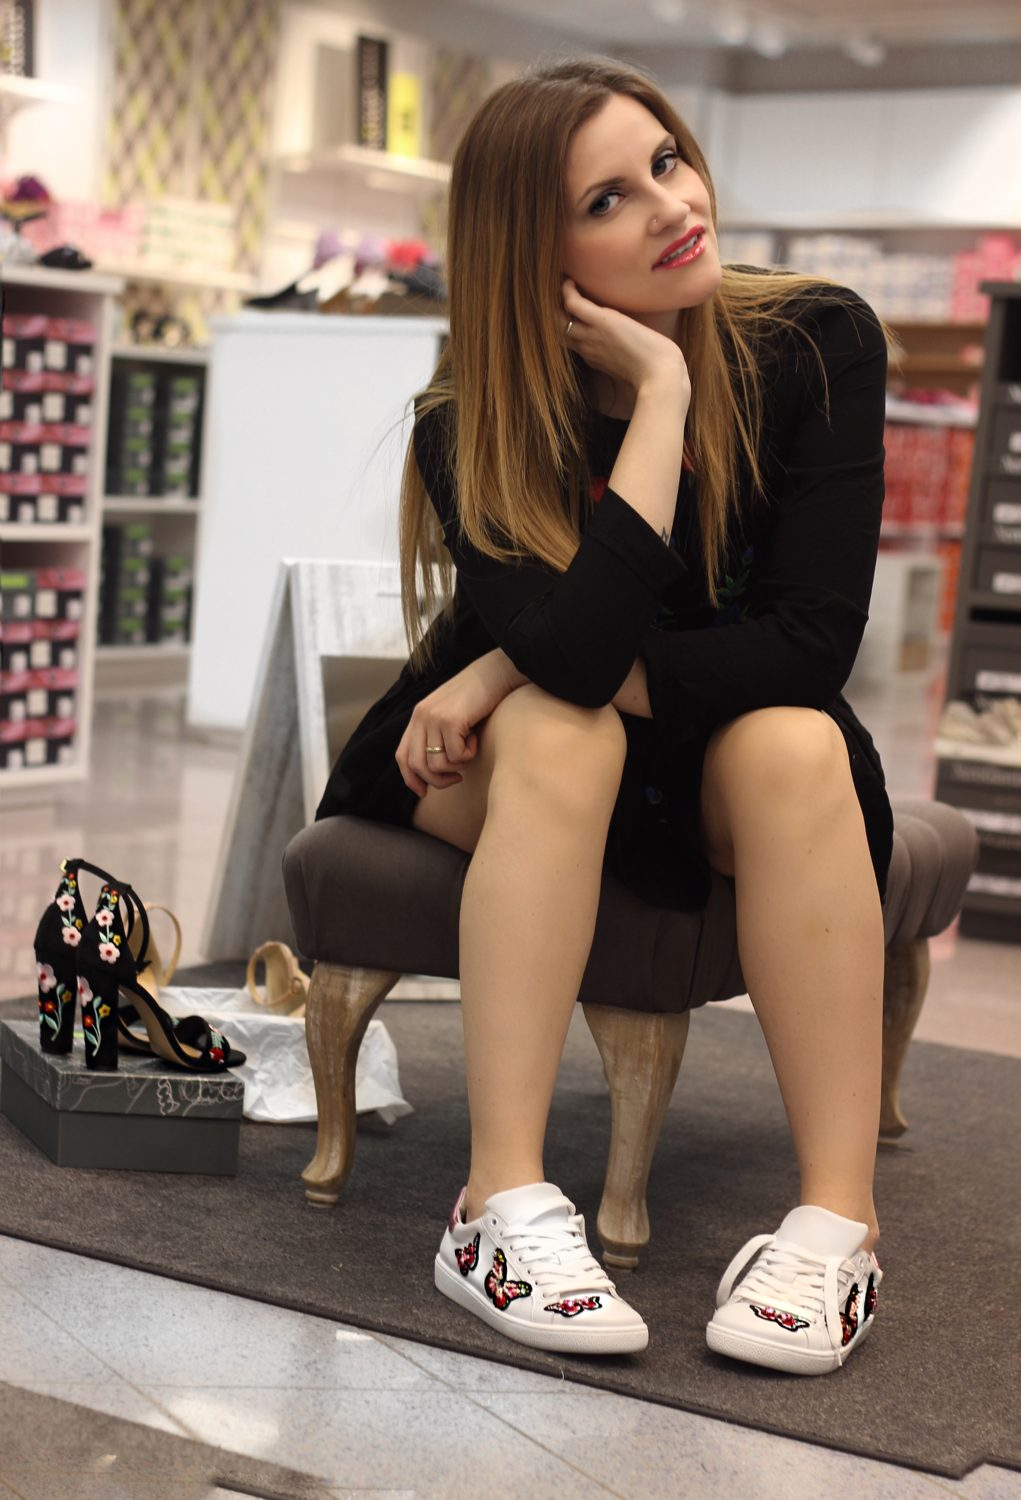 elisabetta bertolini fashion blogger italiane famose ritmo shoes